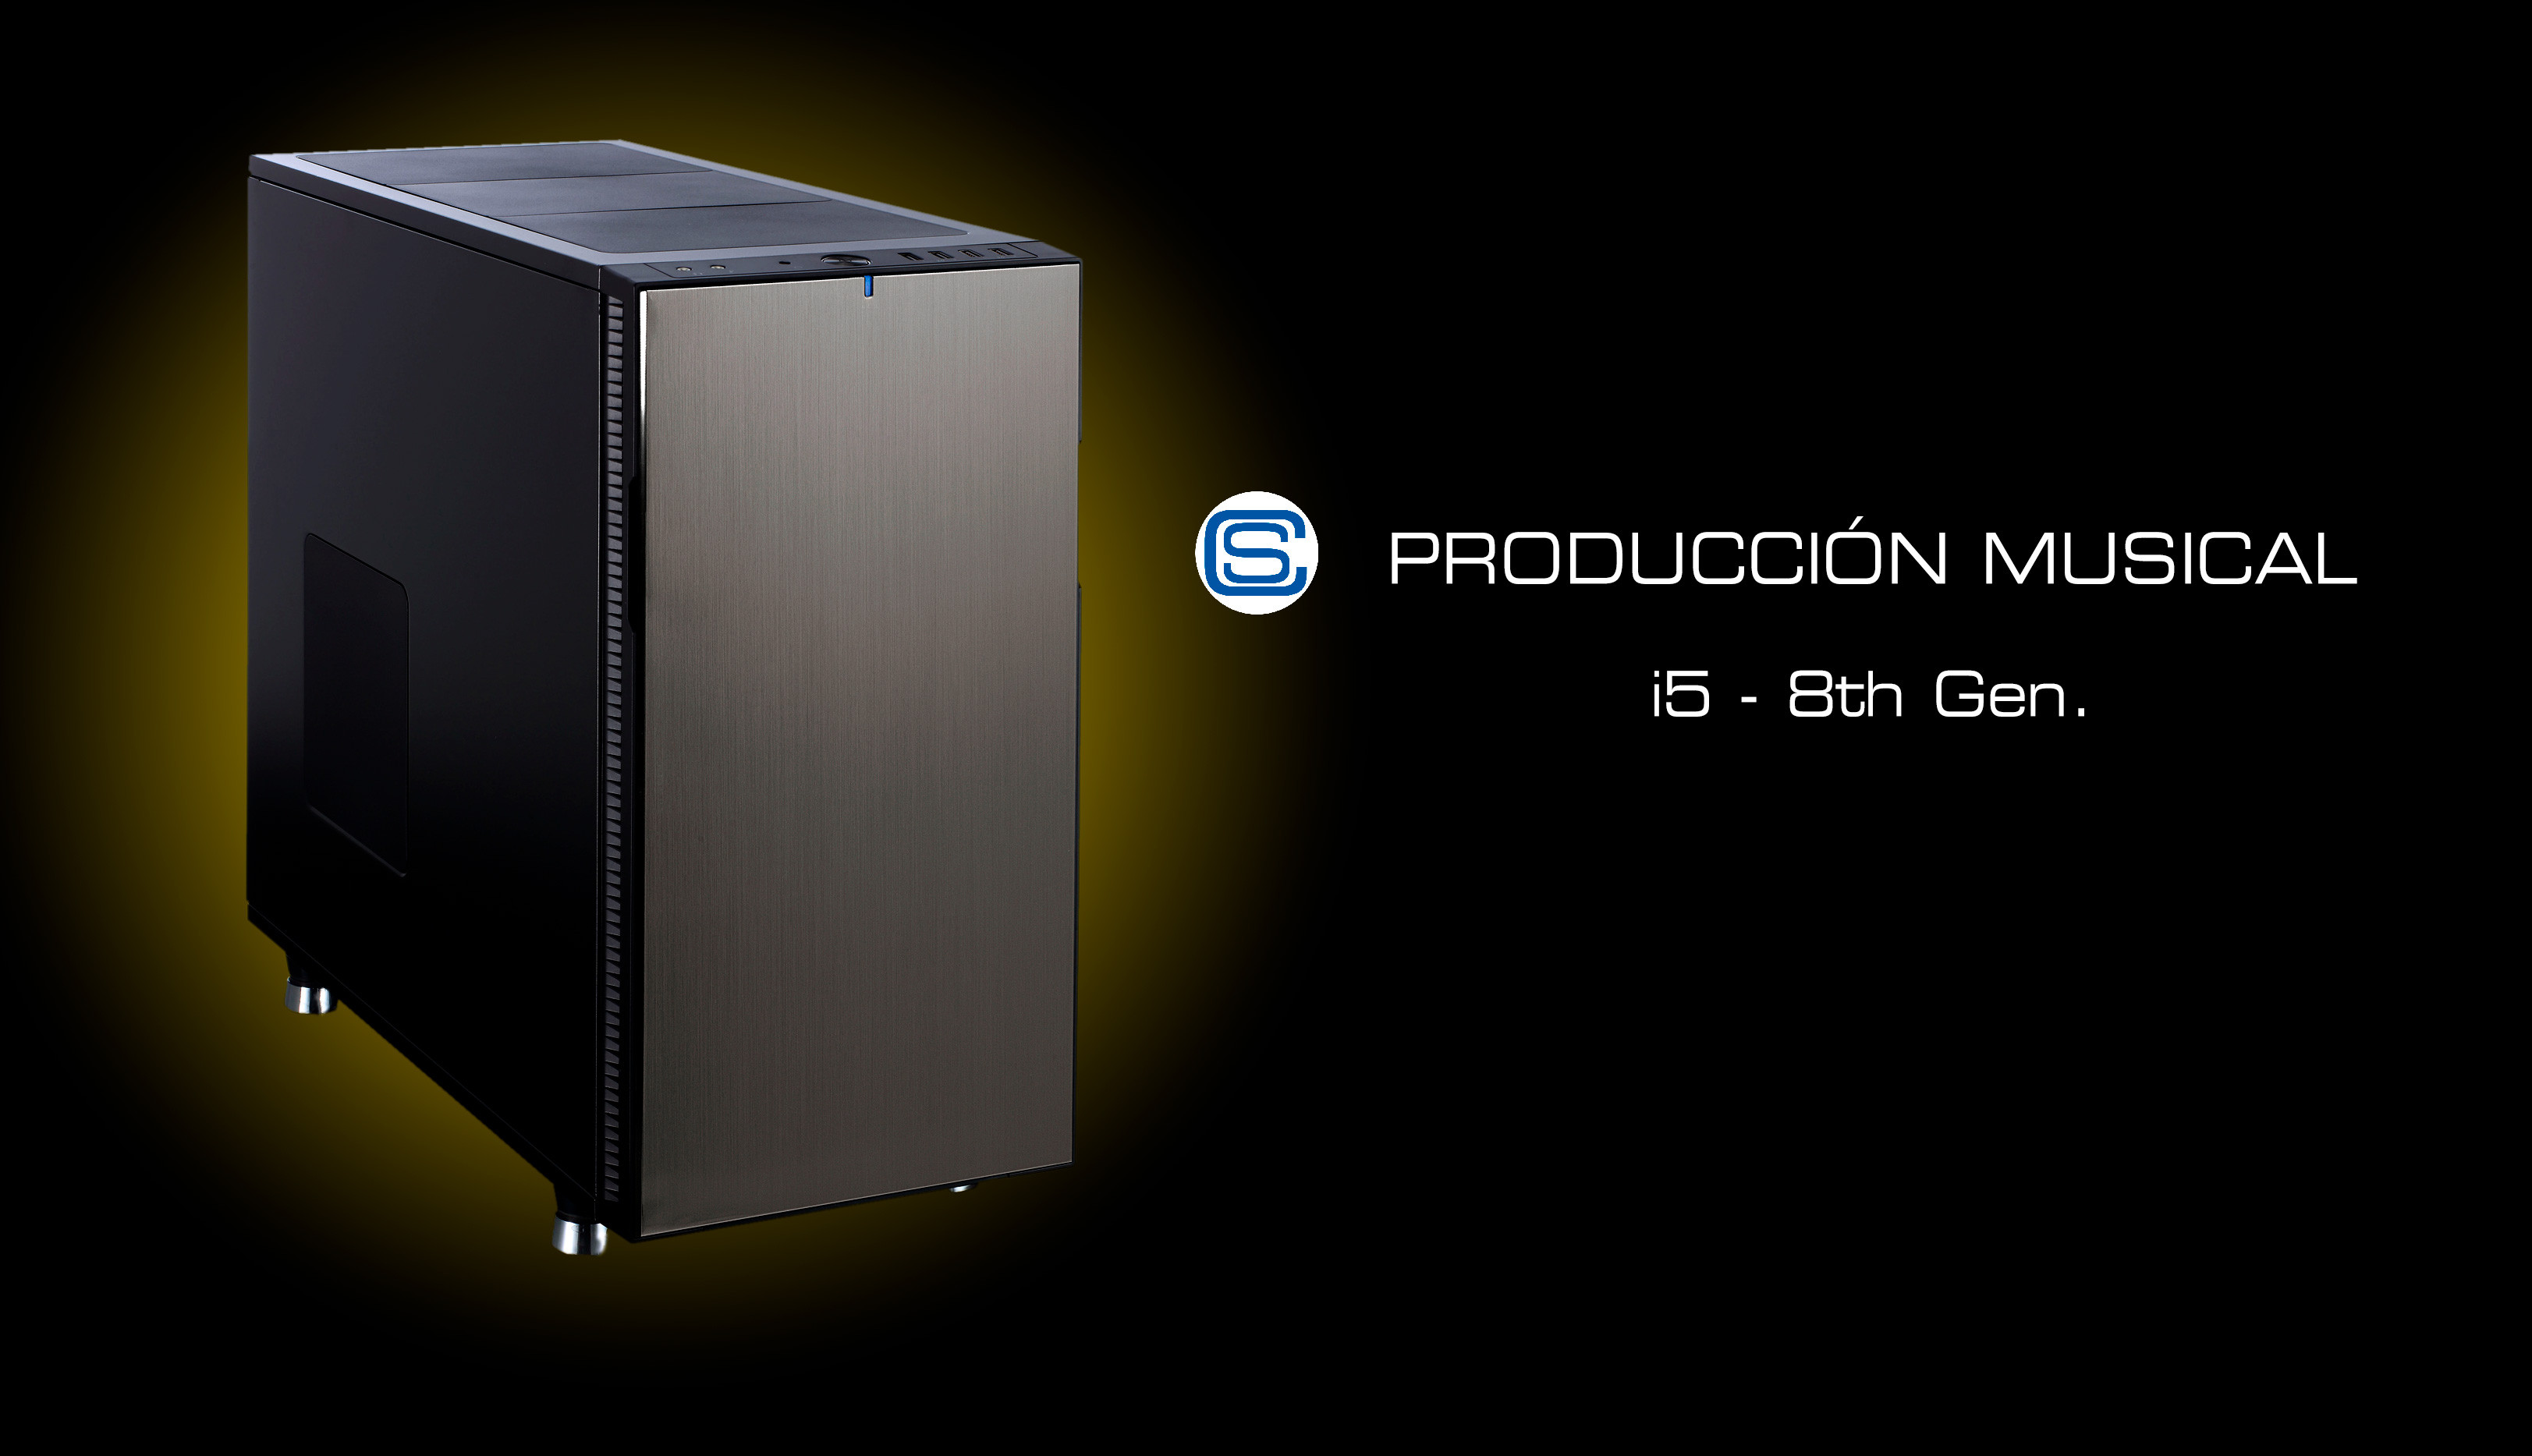 PC Producción Musical